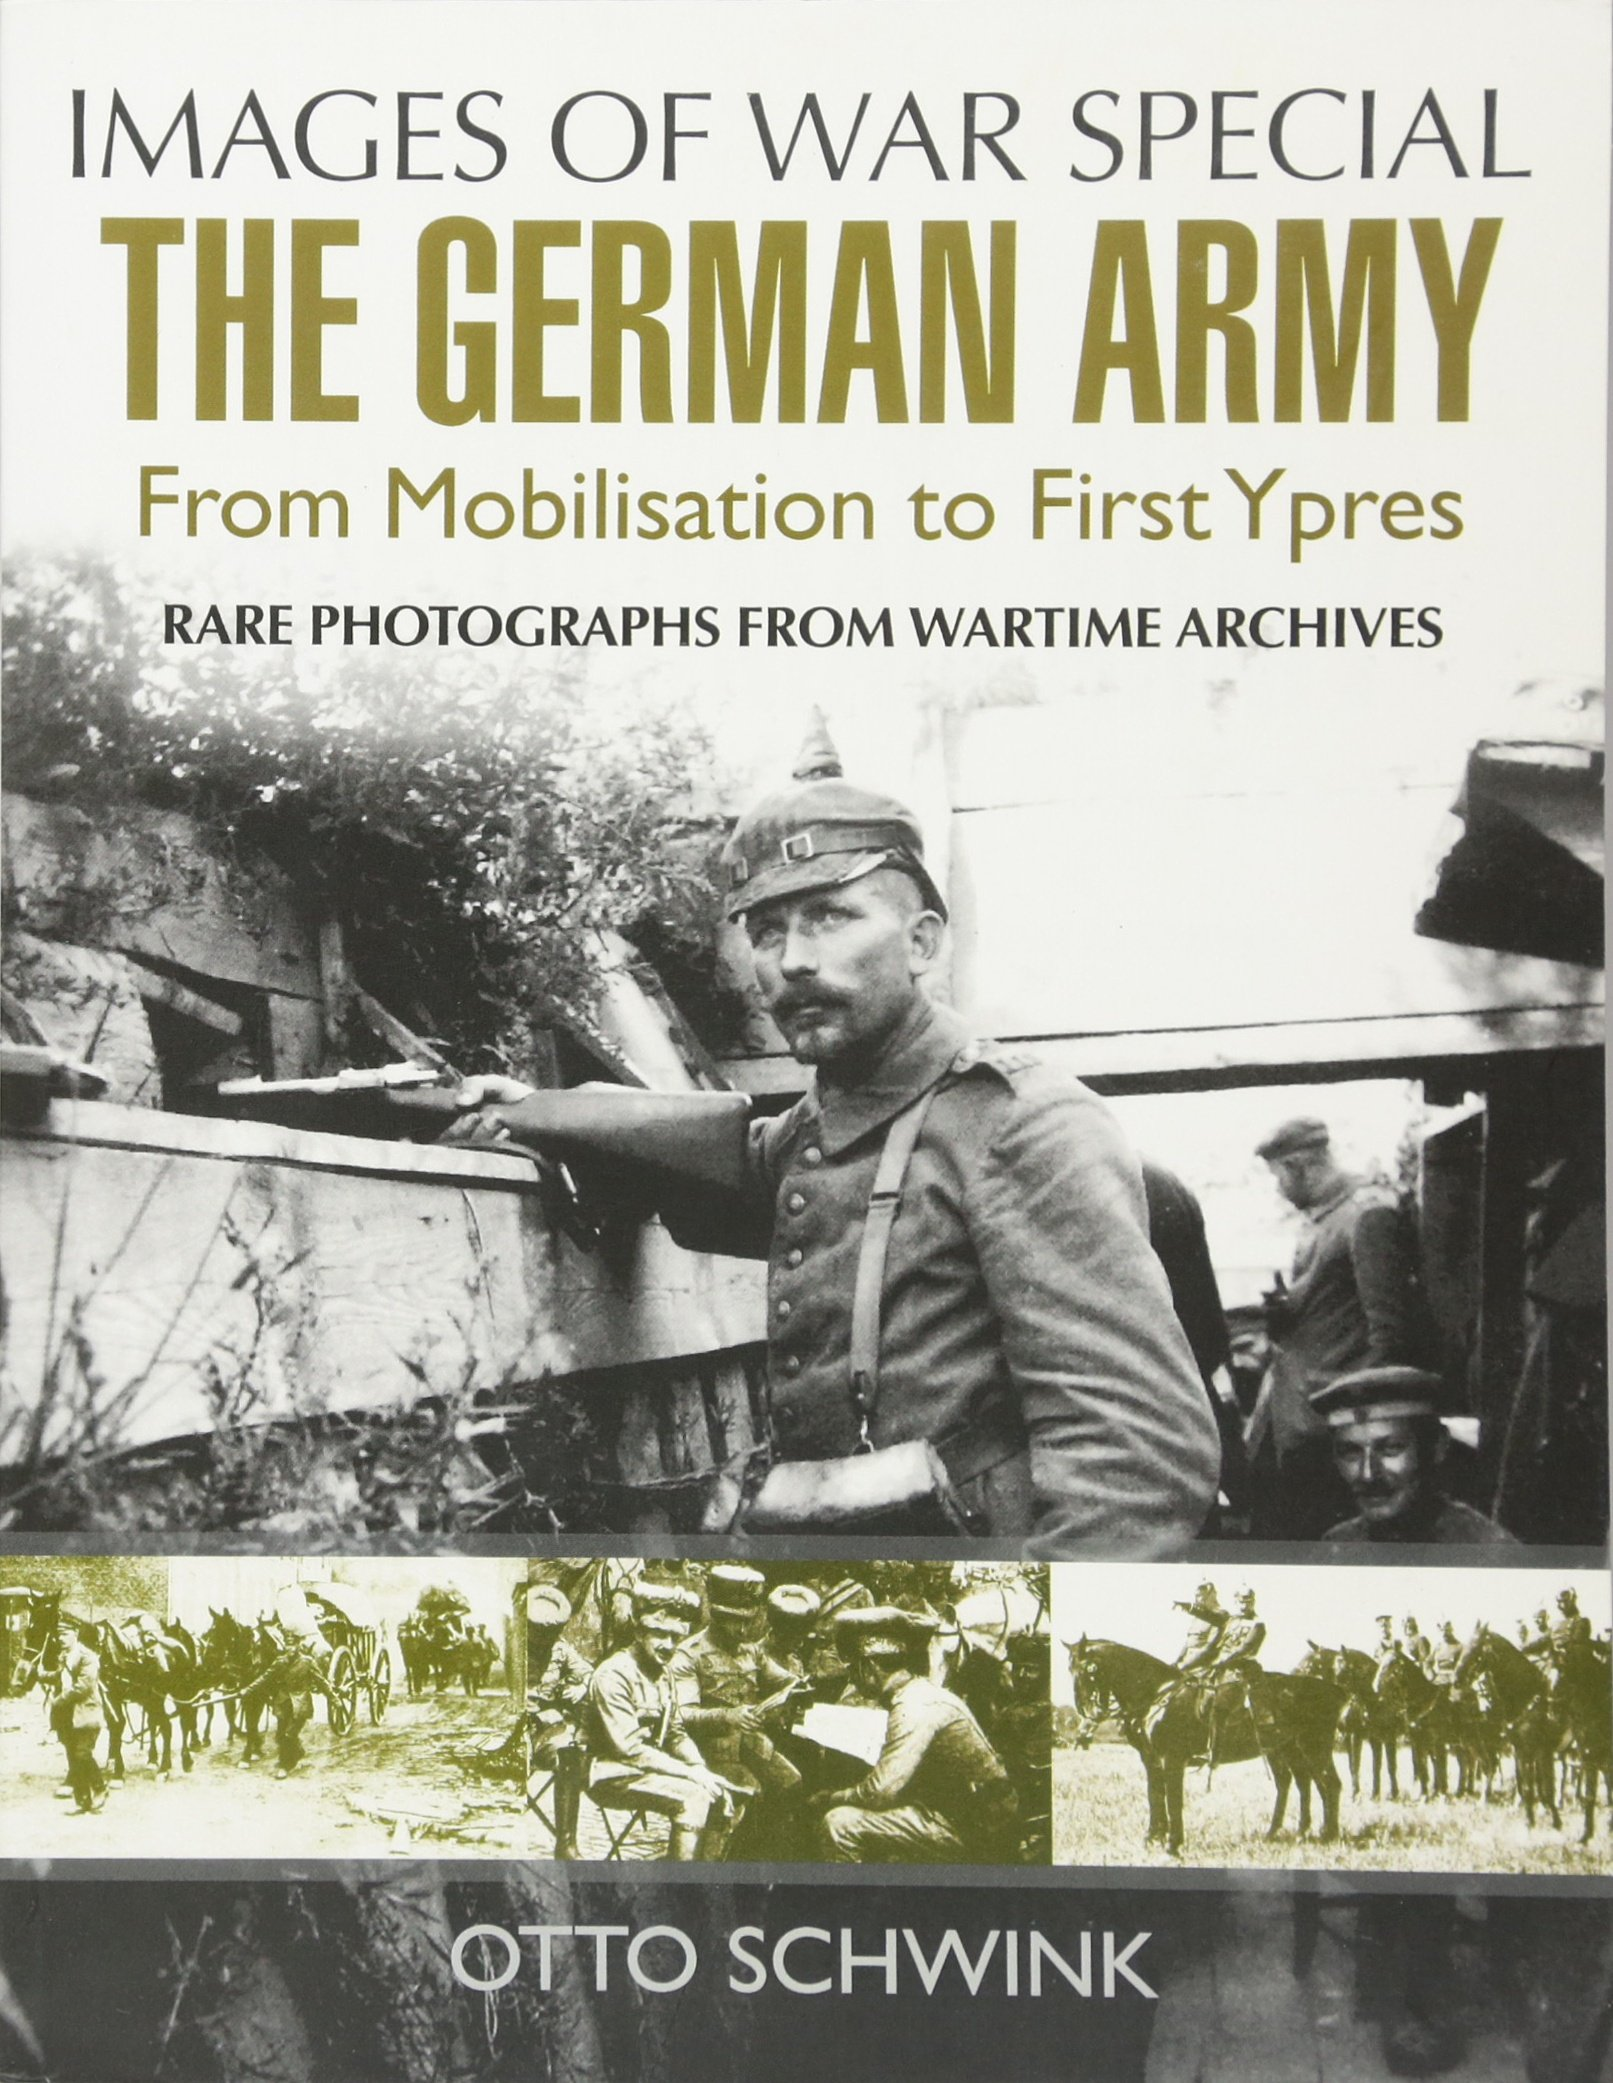 Download The German Army from Mobilisation to First Ypres (Images of War Special) PDF